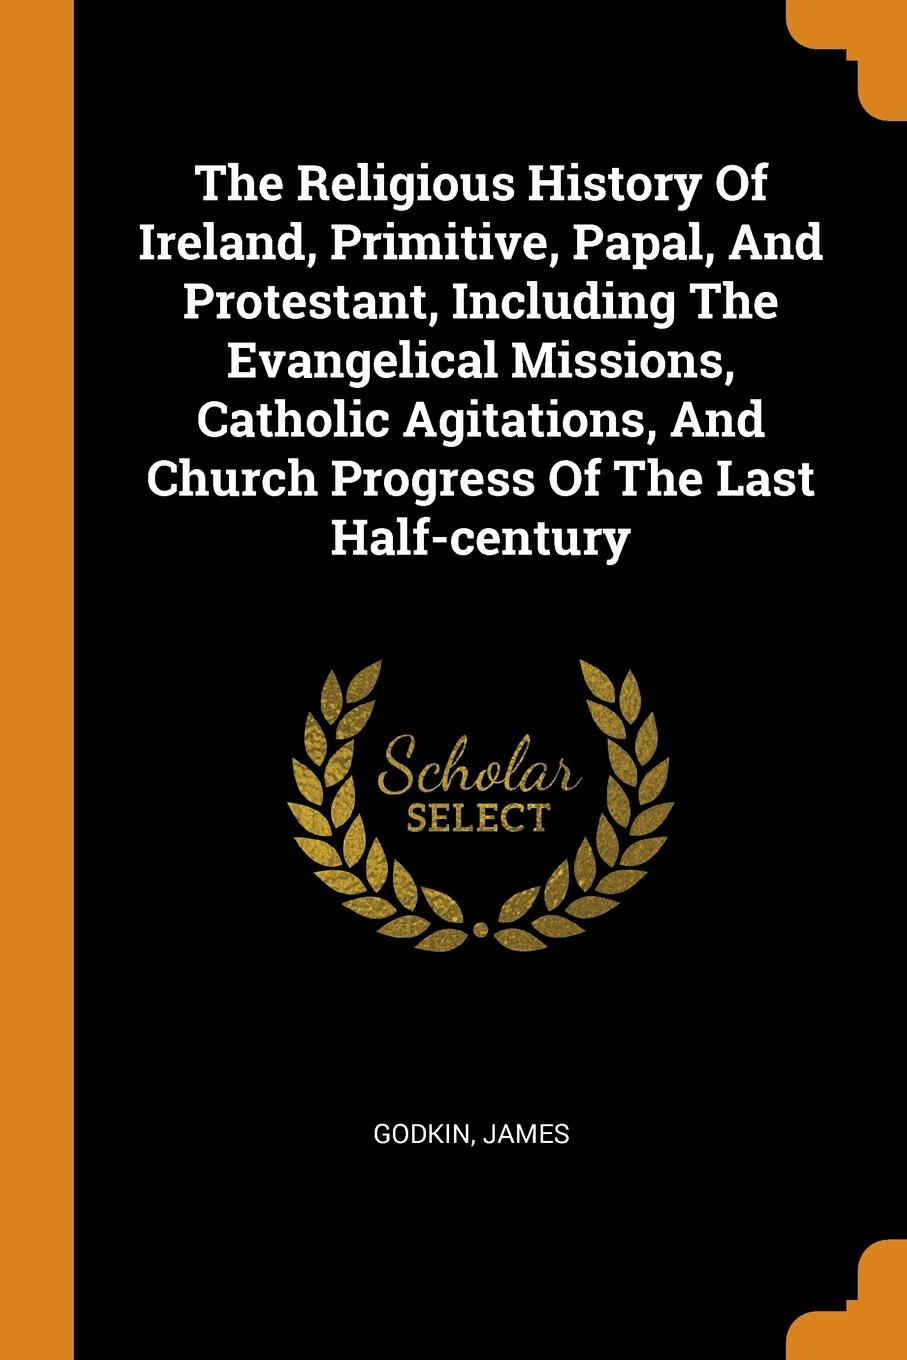 Godkin James The Religious History Of Ireland, Primitive, Papal, And Protestant, Including The Evangelical Missions, Catholic Agitations, And Church Progress Of The Last Half-century